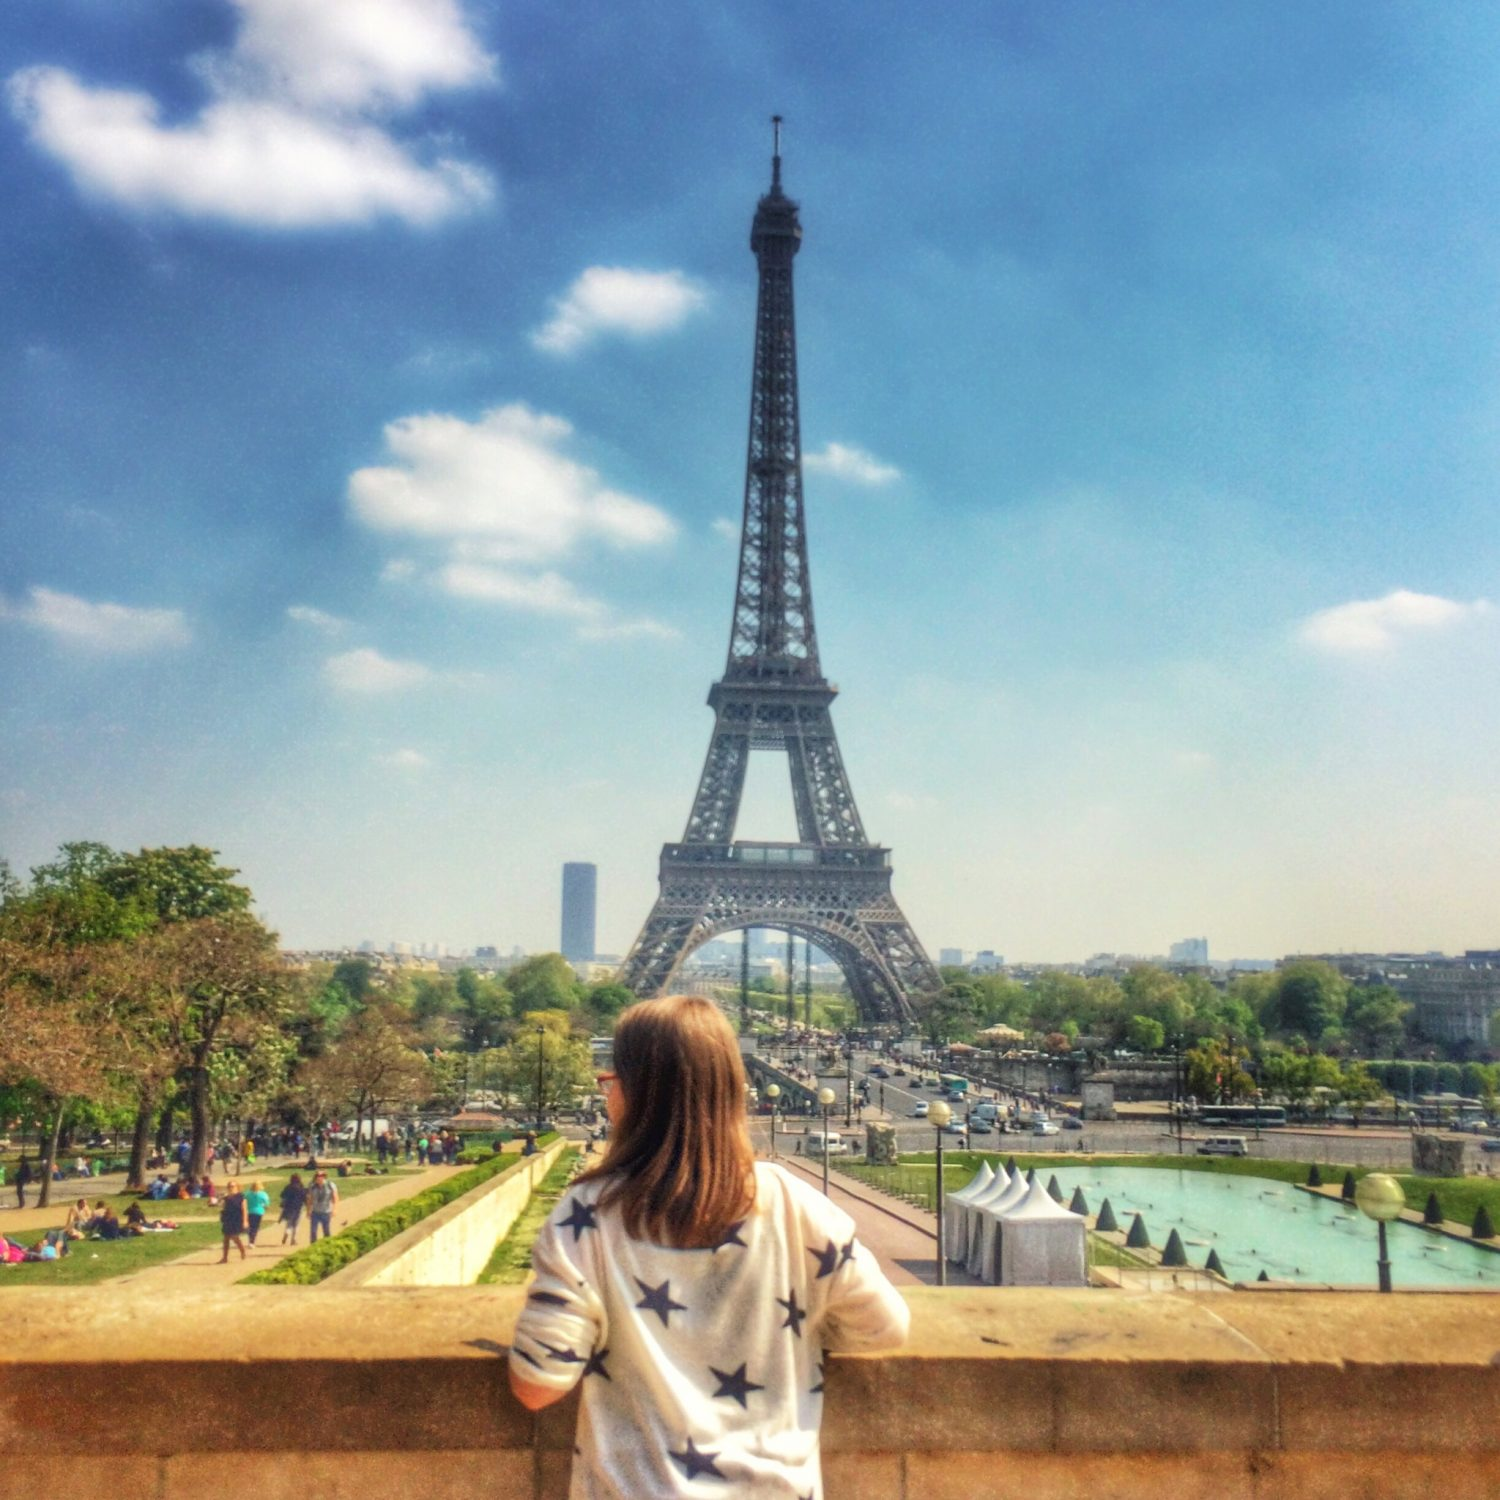 The Eiffel Tower from the Trocadero